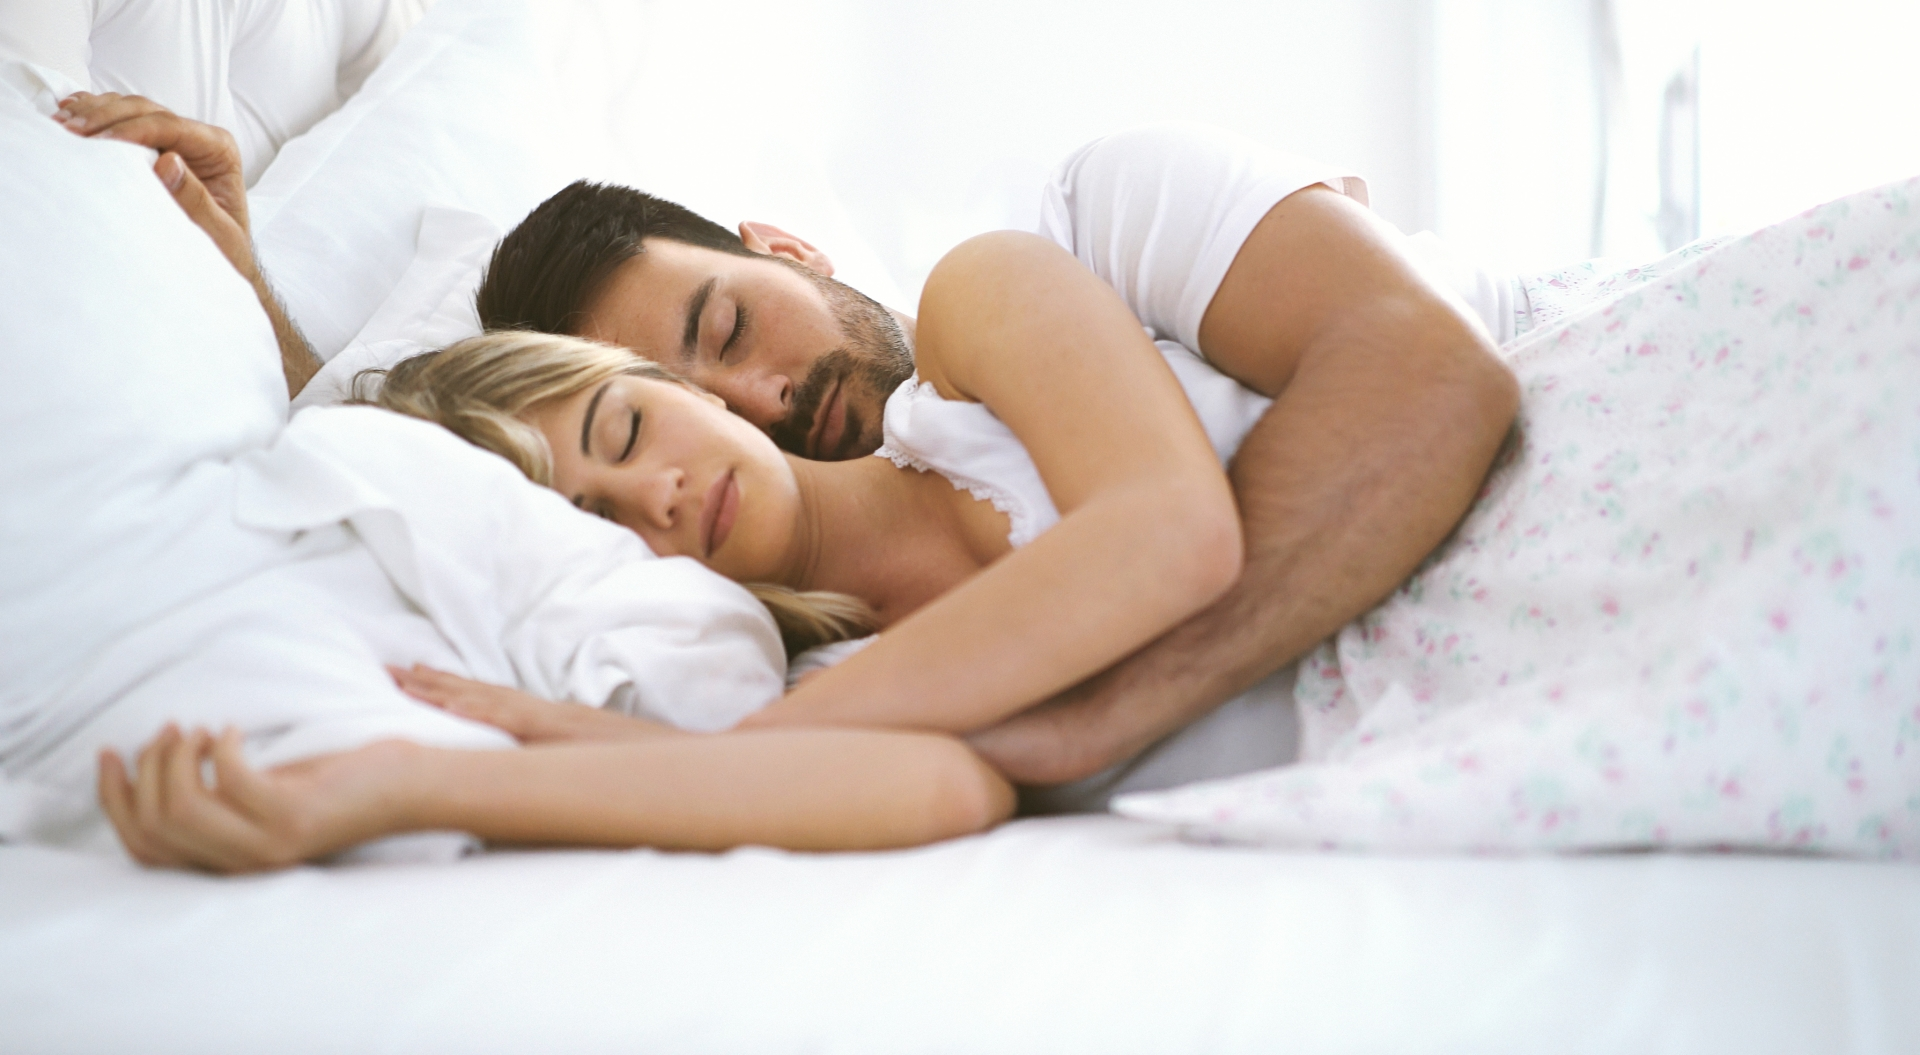 A couple side sleeping in bed